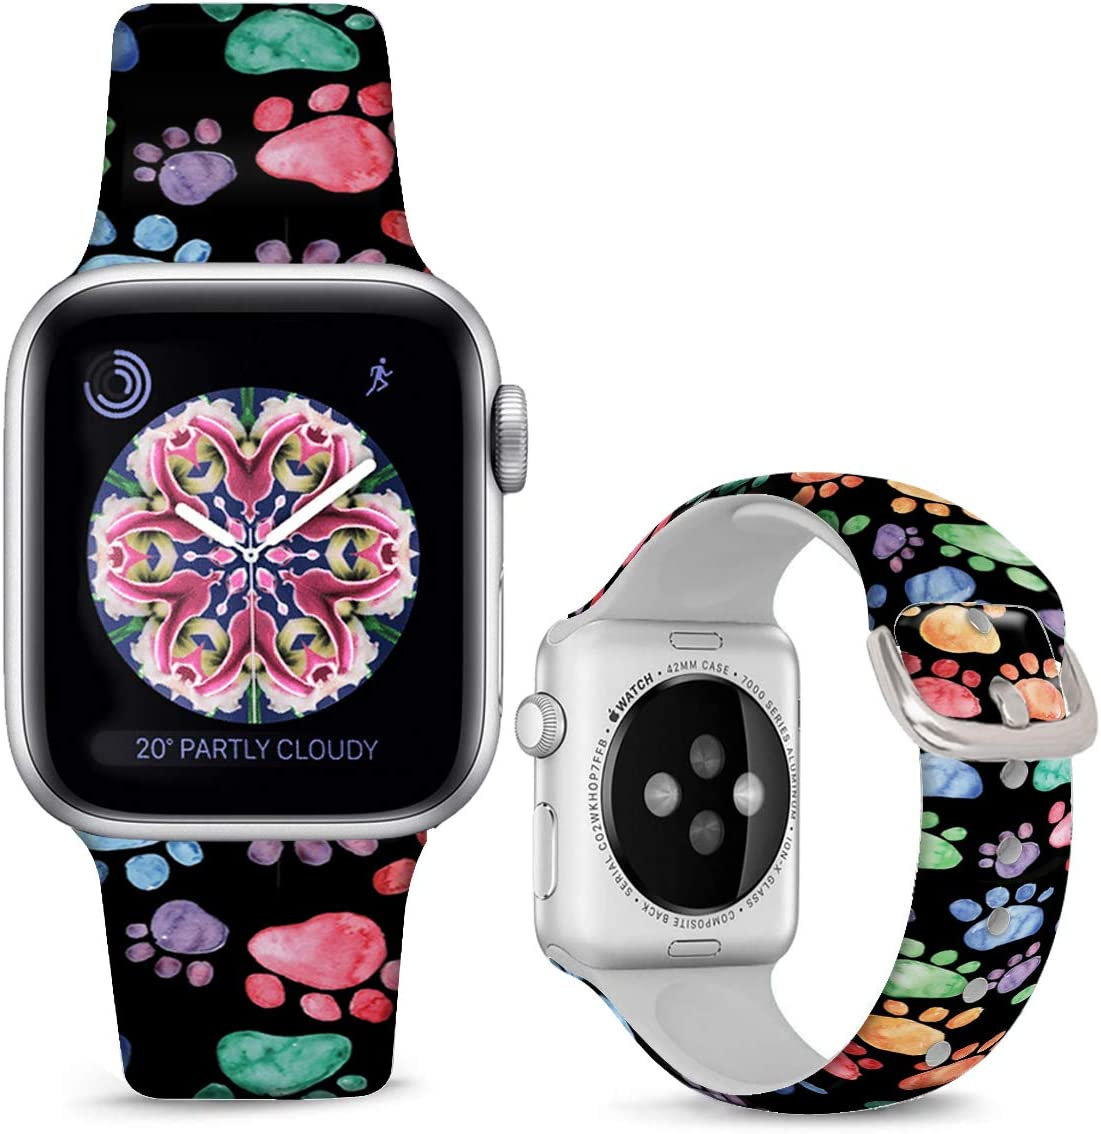 DOO UC Floral Bands Compatible with iWatch 38mm/42mm/40mm/44mm, Cute Animal Footprints Silicone Fadeless Pattern Printed Replacement Bands for iWatch Series 4/3/2/1, M/L for Women/Men